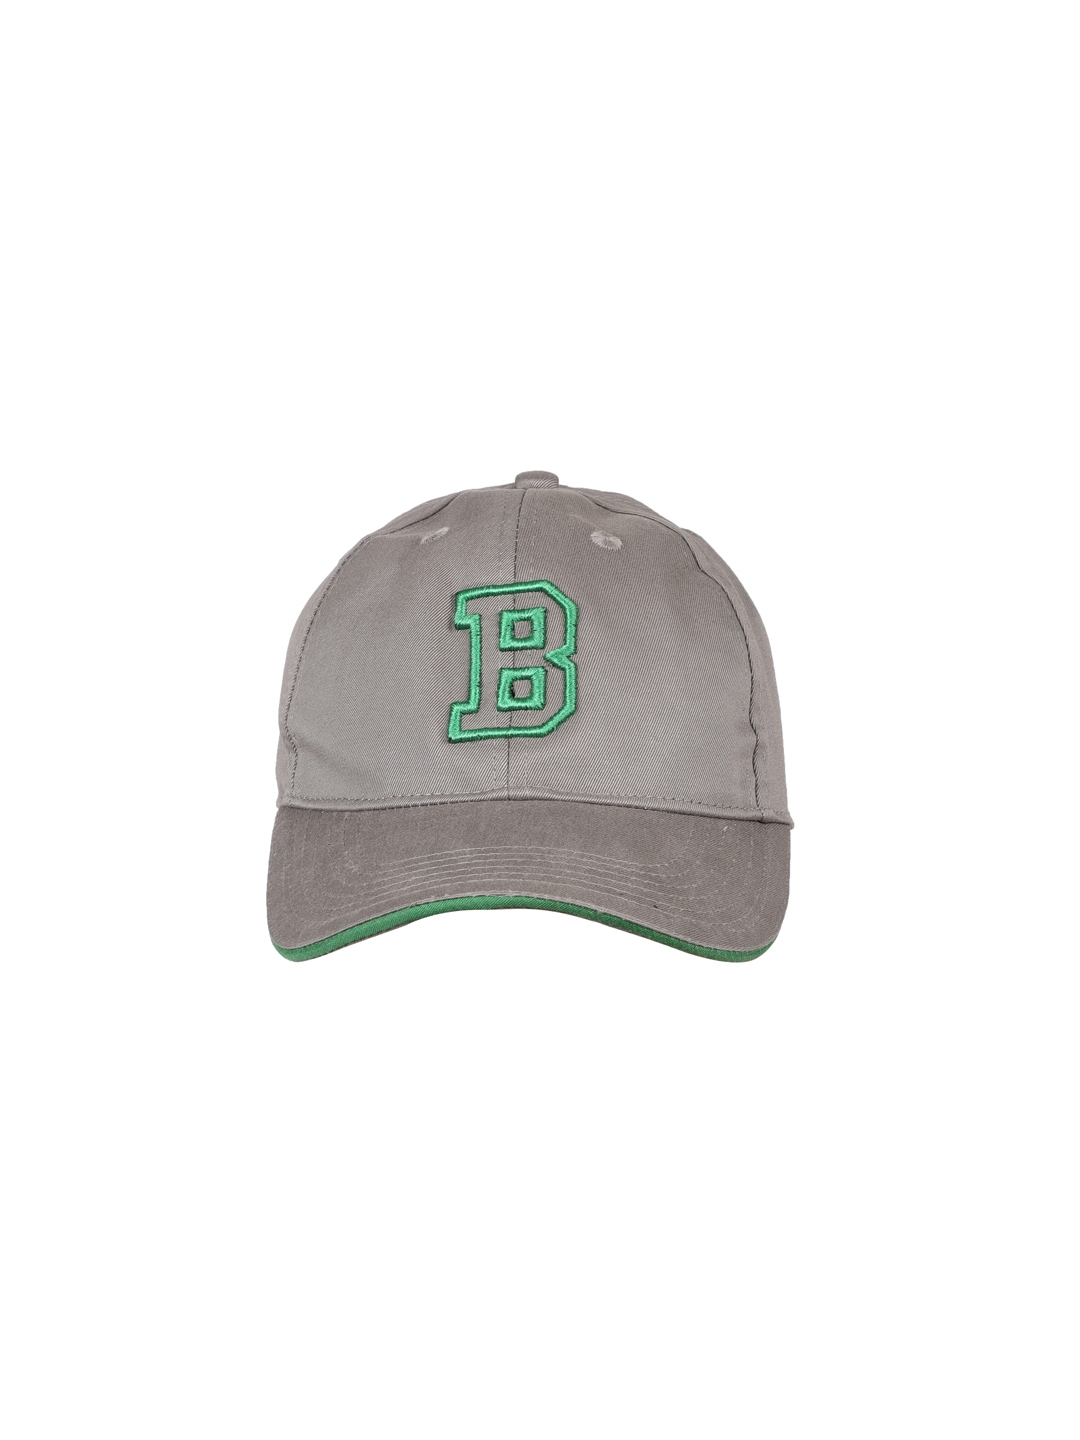 Buy United Colors Of Benetton Unisex Grey Embroidered Baseball Cap ... 3e741cc81ec